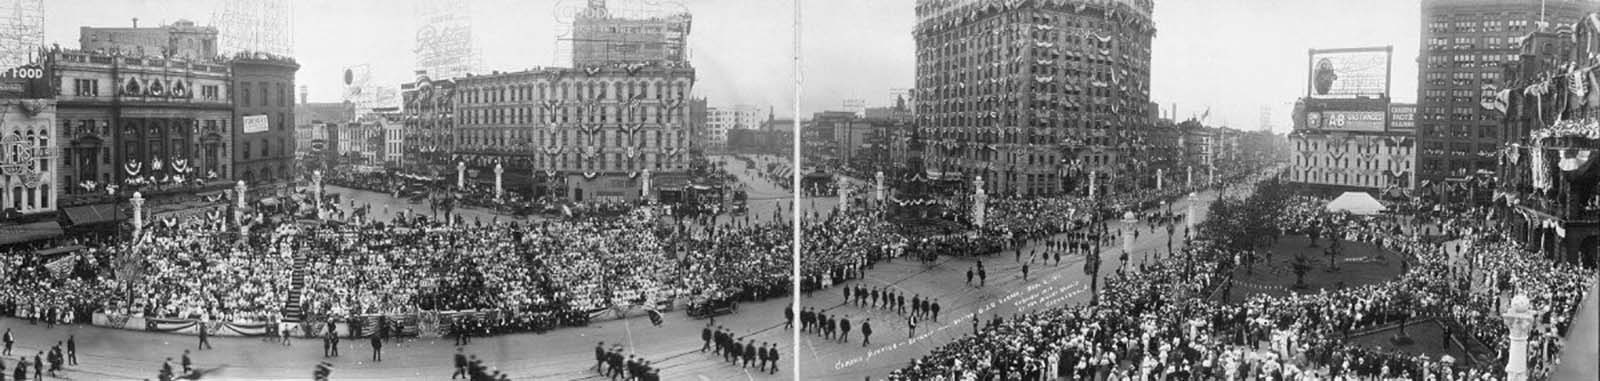 Parade of the Grand Army of the Republic during the 1914 meeting in Detroit, Michigan. 1914.